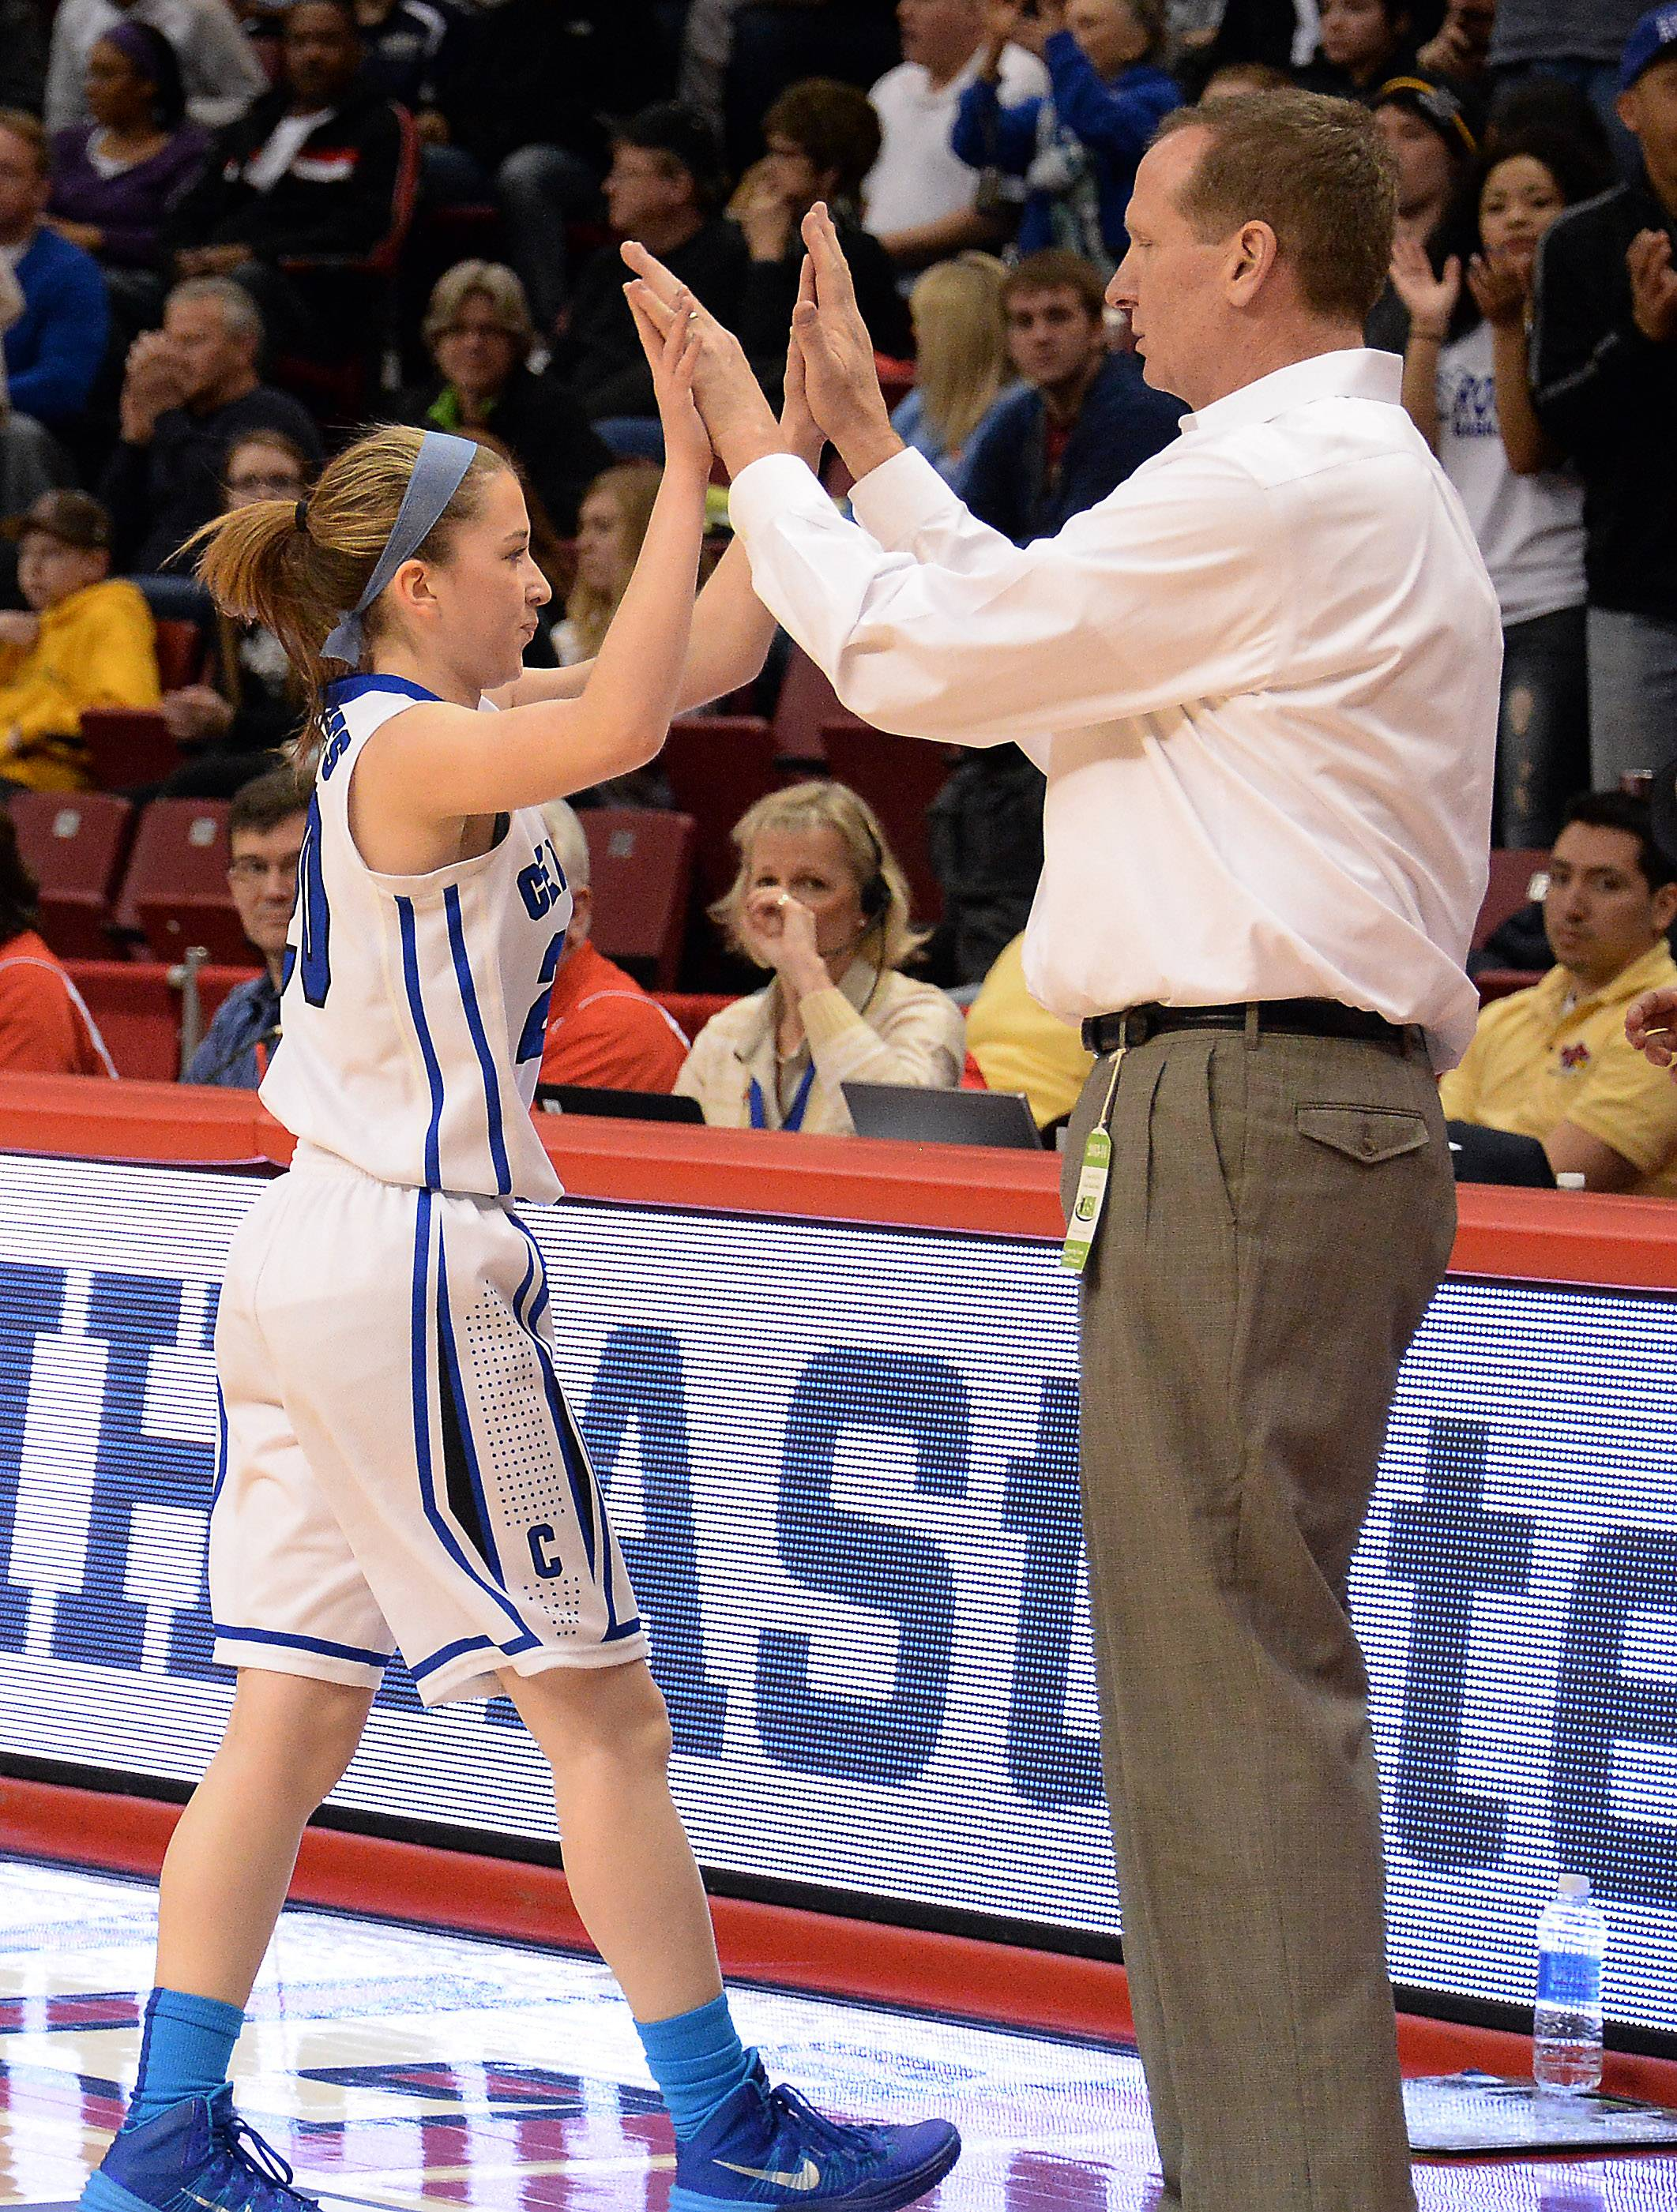 Burlington Central's Kathleen Ratzek, the only senior on the team,  high-fives her coach ,Mark Smith, as she exits the floor at the end of the game Saturday in Normal.i